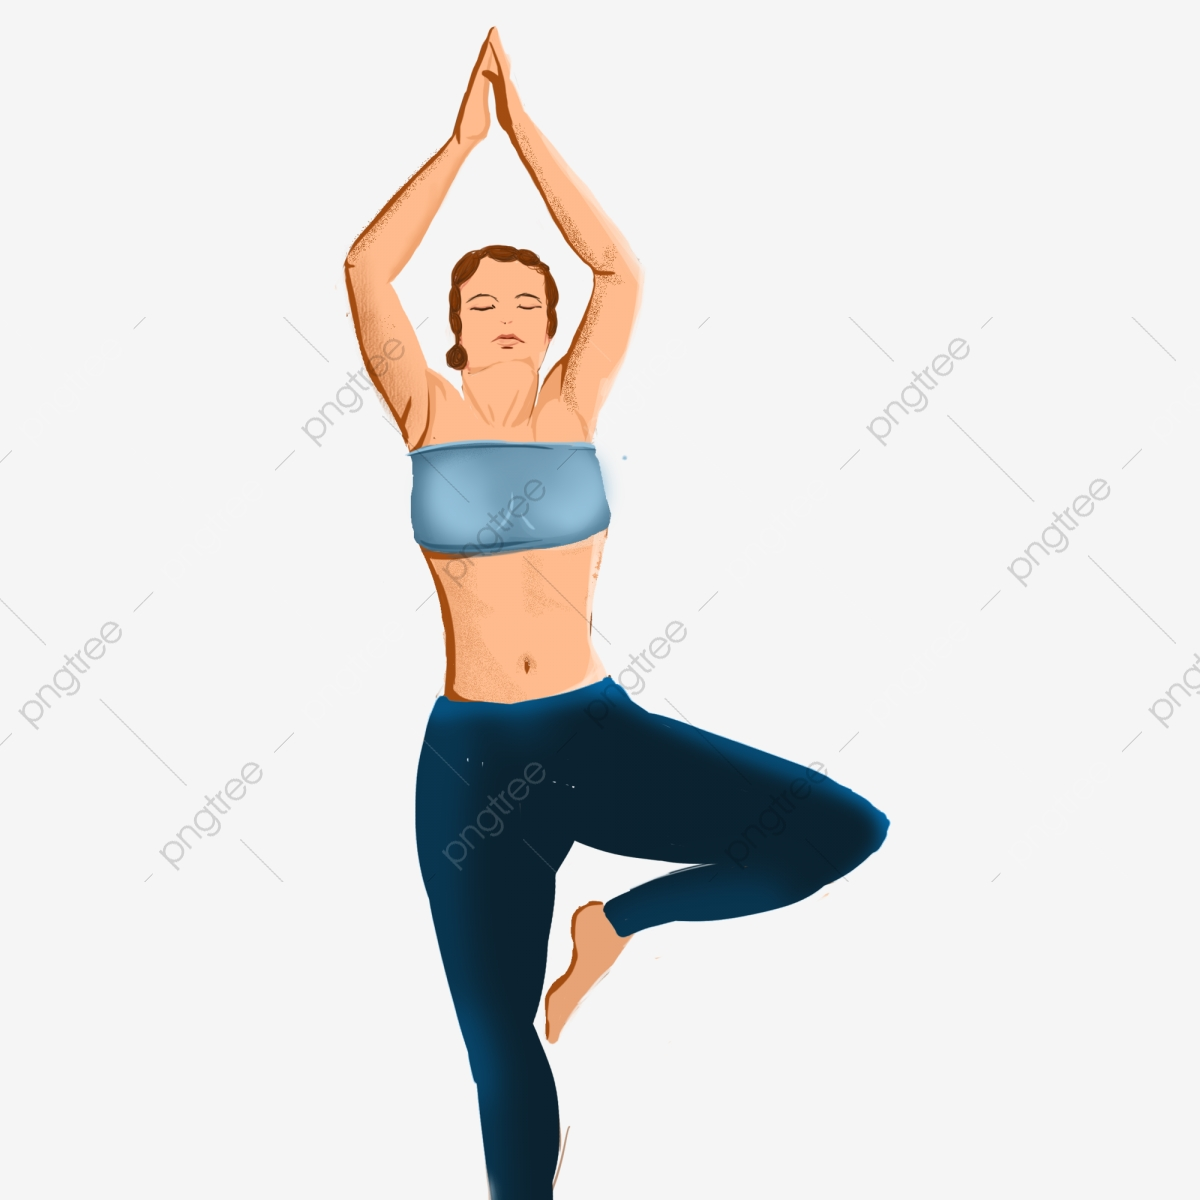 Woman Doing Yoga Weight Loss Illustration Elements Painted Female Fitness Png Transparent Image And Clipart For Free Download